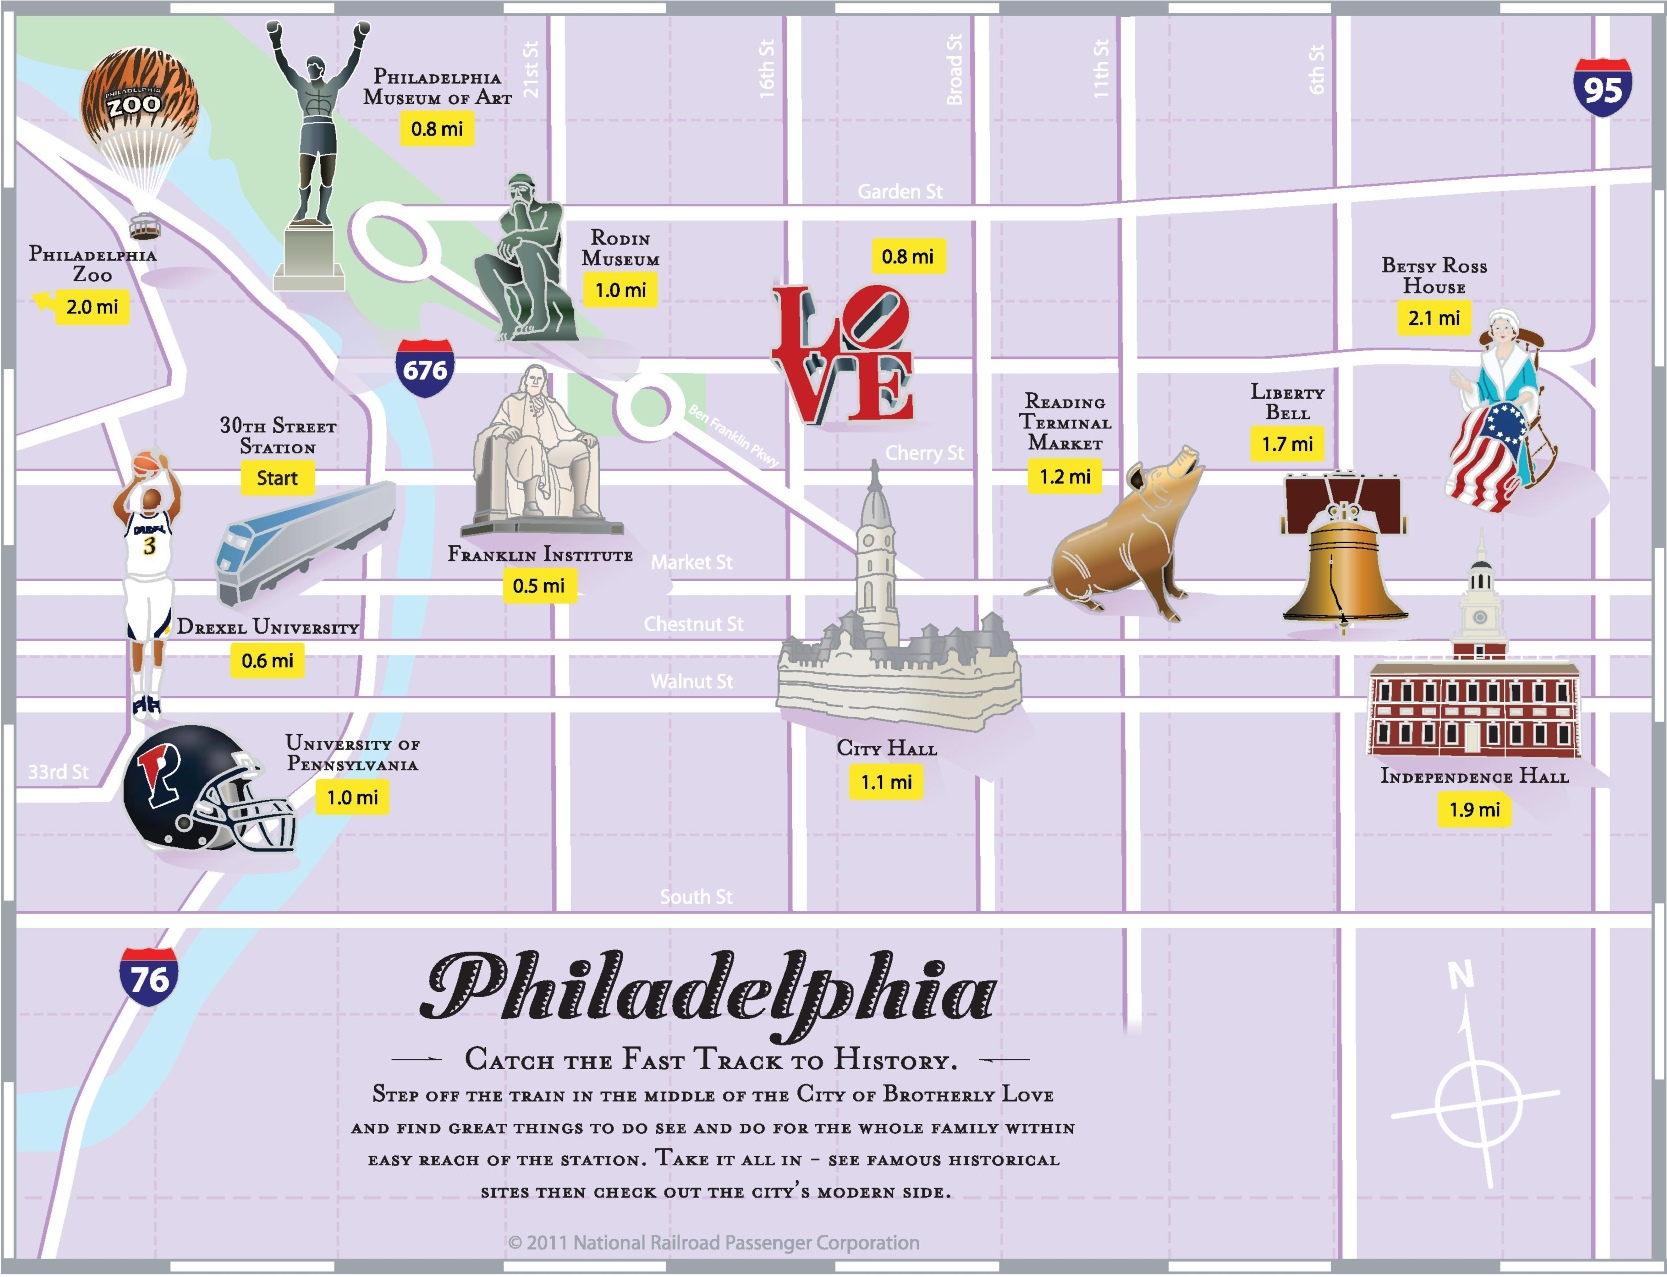 Philadelphia tourist attractions map on pittsburgh attractions map, honolulu oahu attractions map, kansas city shopping, pasadena attractions map, kansas tourist map, fairbanks attractions map, shenzhen attractions map, kansas city restaurants, wisconsin attractions map, alexandria attractions map, montego bay jamaica attractions map, kansas city amusement parks, newport attractions map, hangzhou attractions map, ohio attractions map, jacksonville attractions map, new jersey attractions map, portland attractions map, philadelphia attractions map, saint louis attractions map,